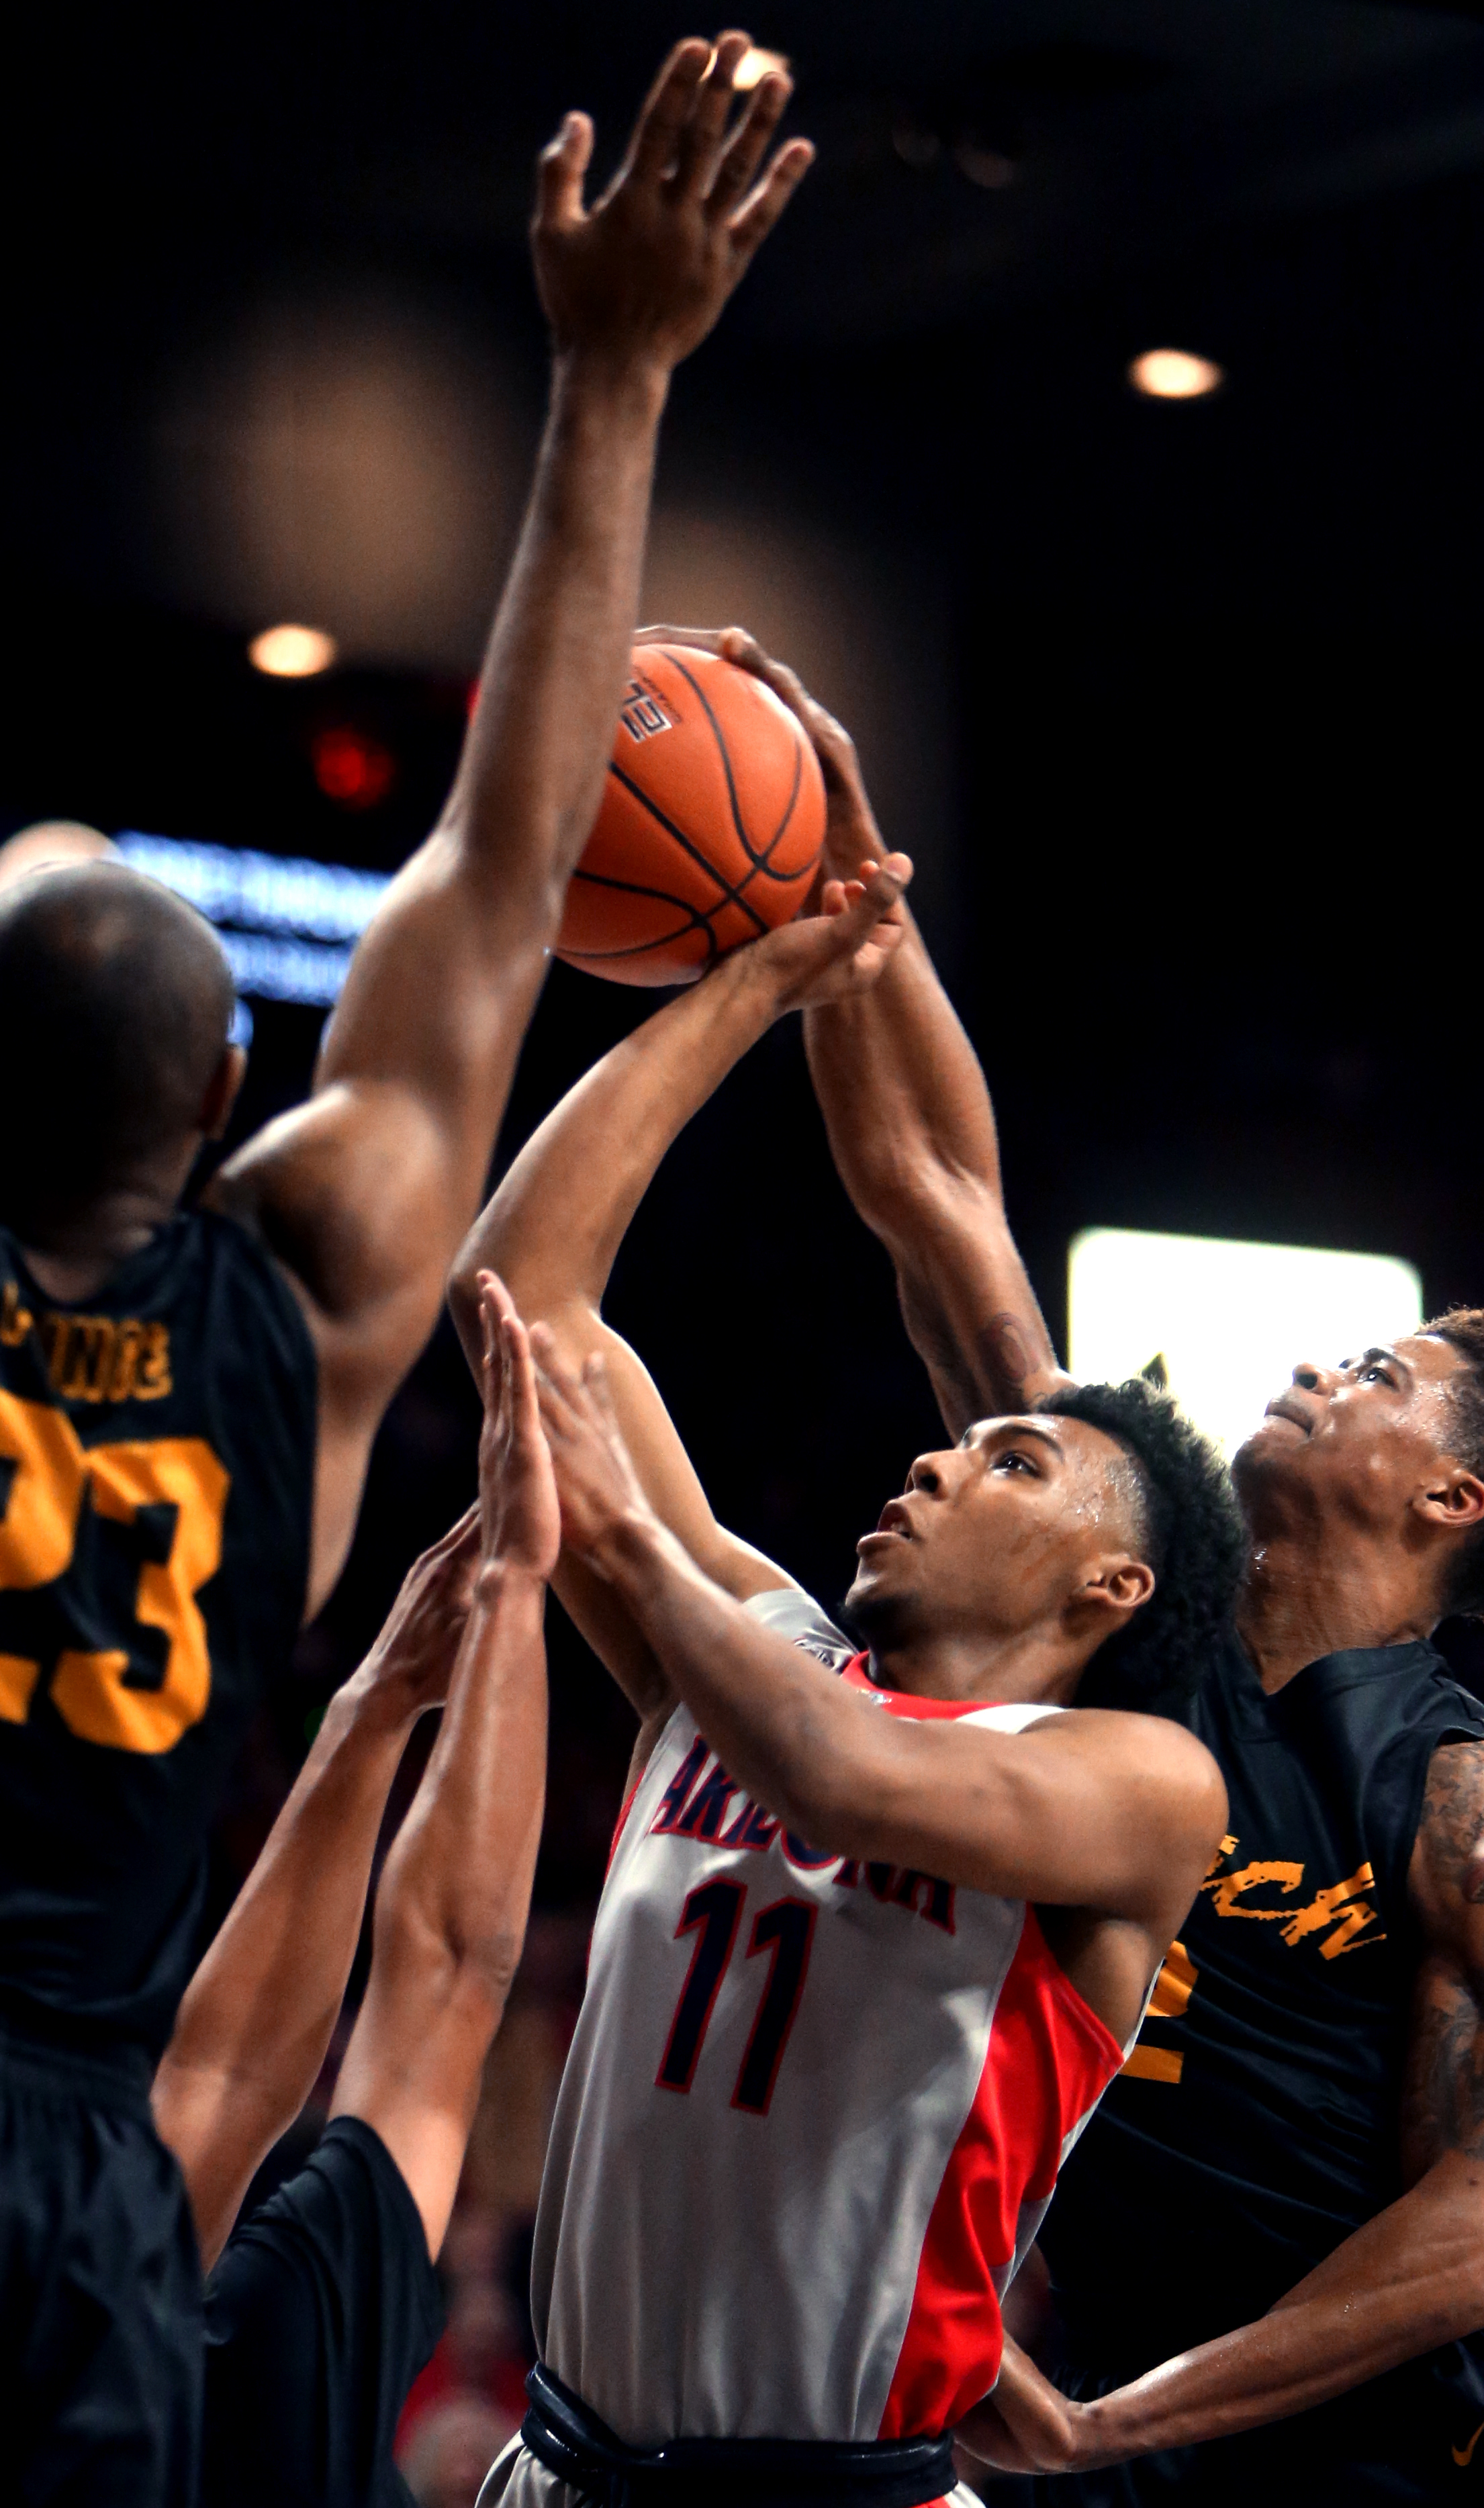 Arizona guard Allonzo Trier (11) drives into the lane between Long Beach State forward Roschon Prince, left, guard A.J. Spencer (15) and guard Nick Faust (2) during the first half of an NCAA college basketball game Tuesday, Dec. 22, 2015, in Tucson, Aria.